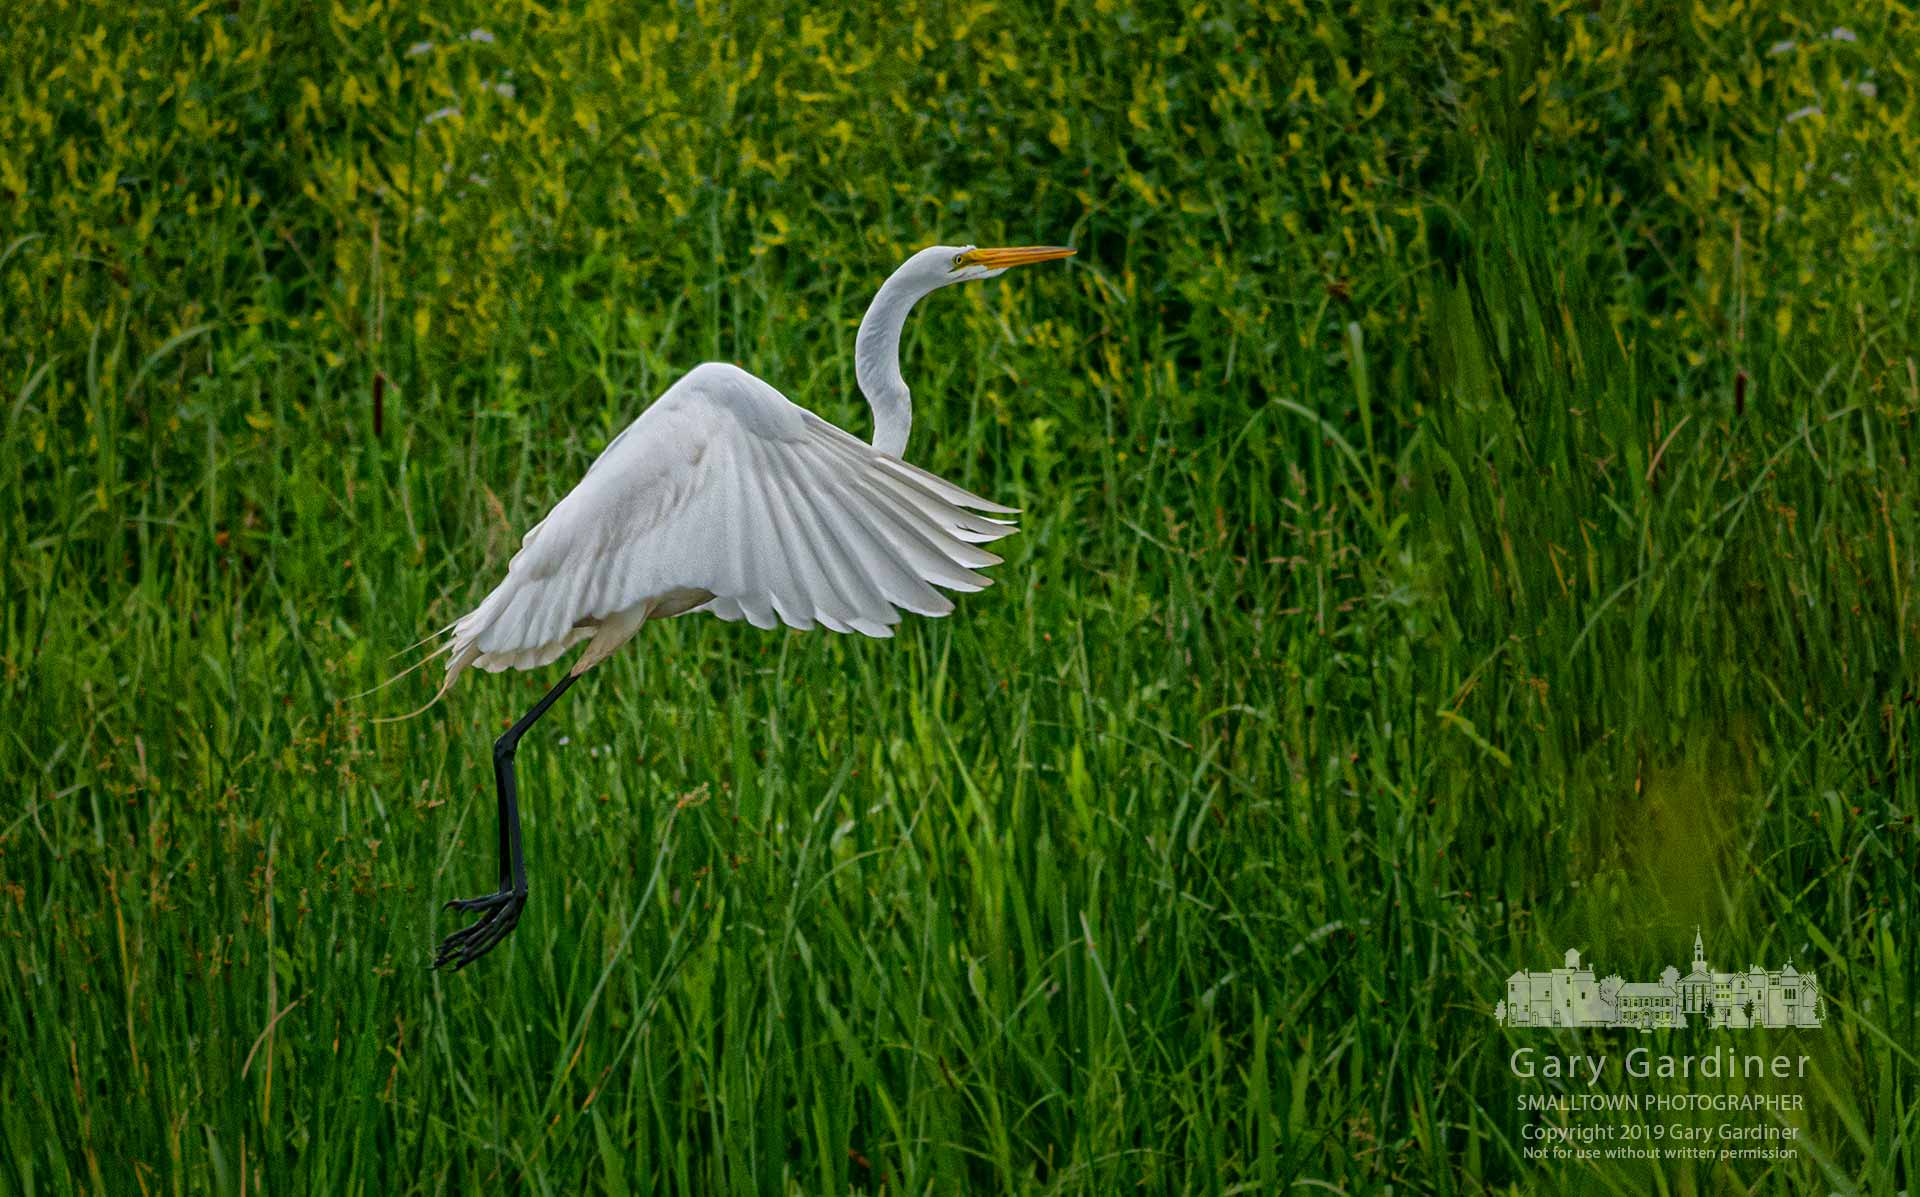 A white egret launches into flight after feeding in the slow-moving waters of Highlands Park wetlands. My Final Photo for June 15, 2019.